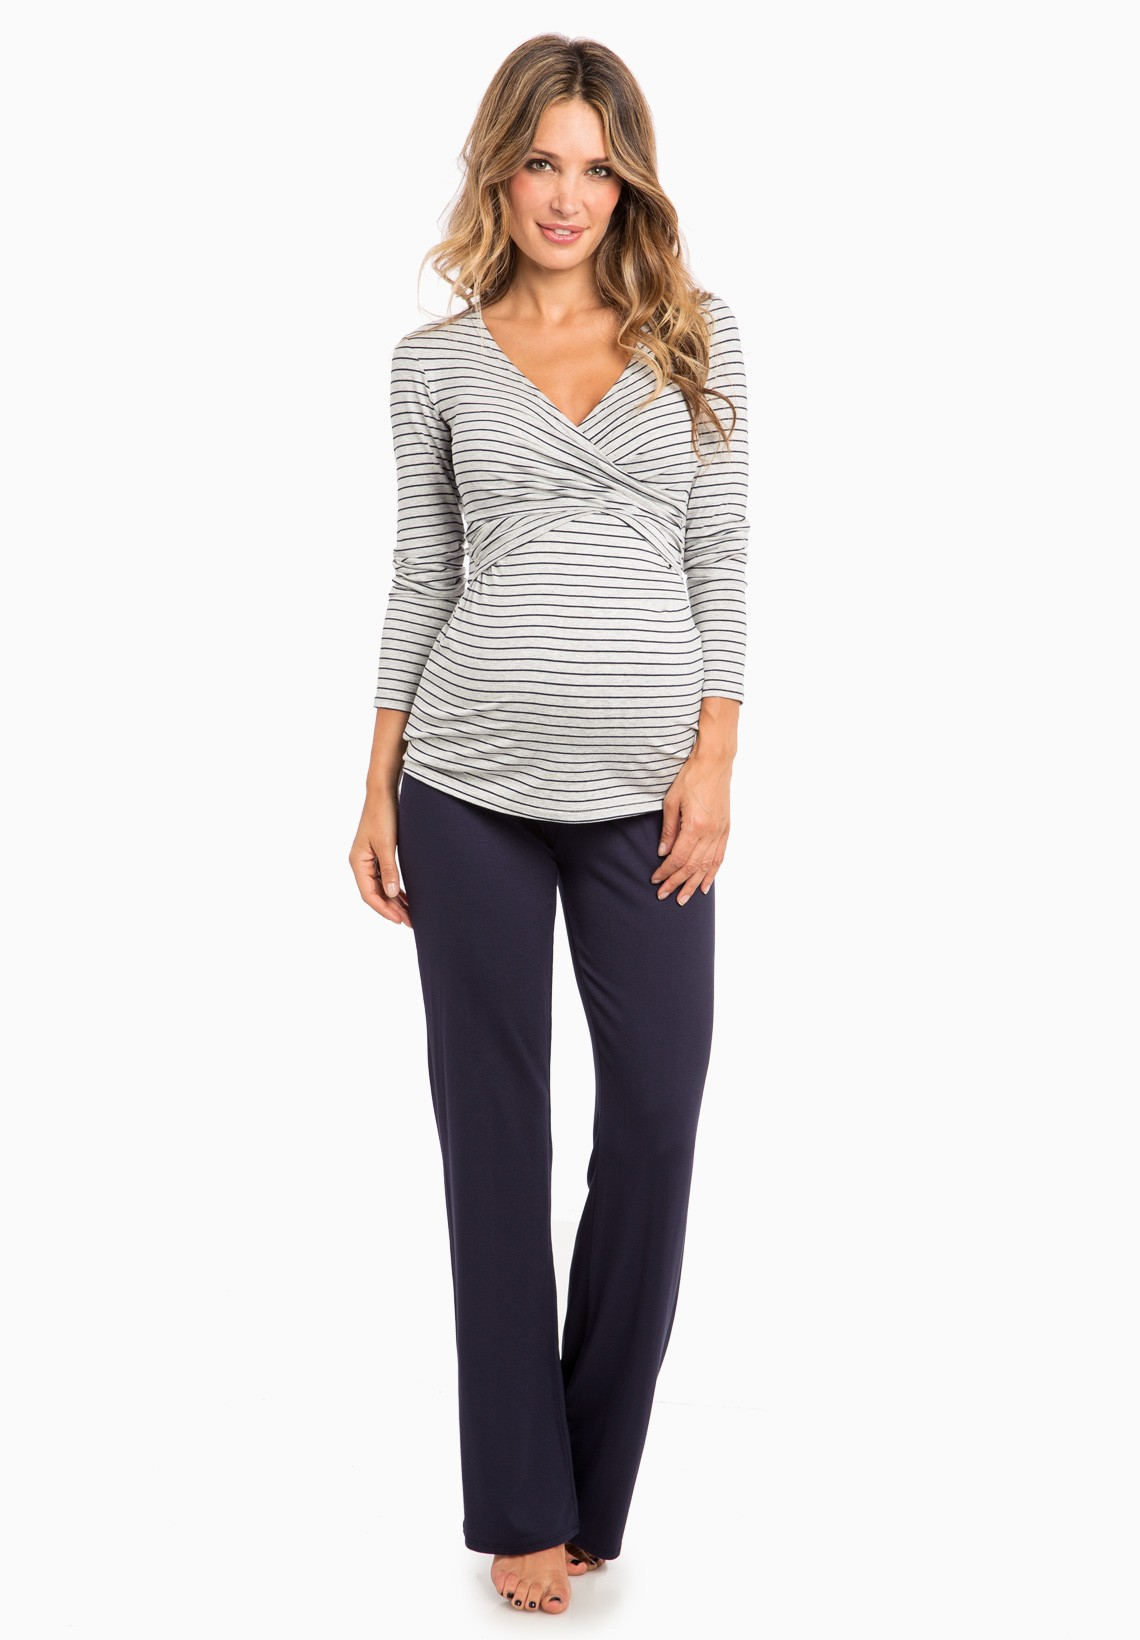 Maternity pajamas trendy selections at affordable prices envie nursing flore ls maternity nightwear ombrellifo Image collections